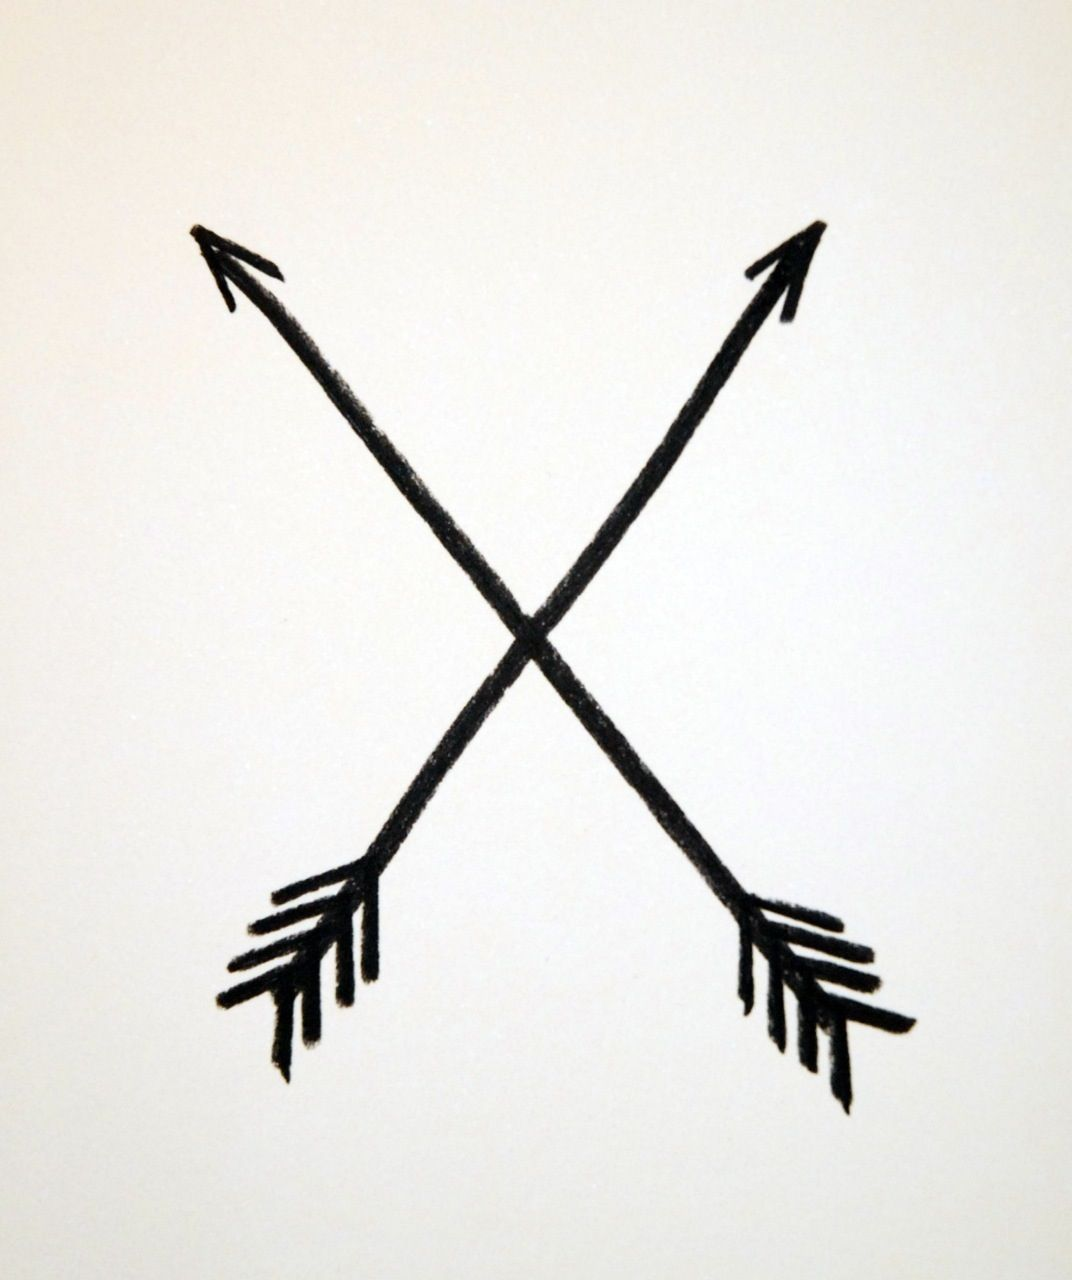 Crossed arrows christine smythe elise i think that we should crossed arrows are a native american symbol for friendship cool idea for friend tattoos biocorpaavc Images